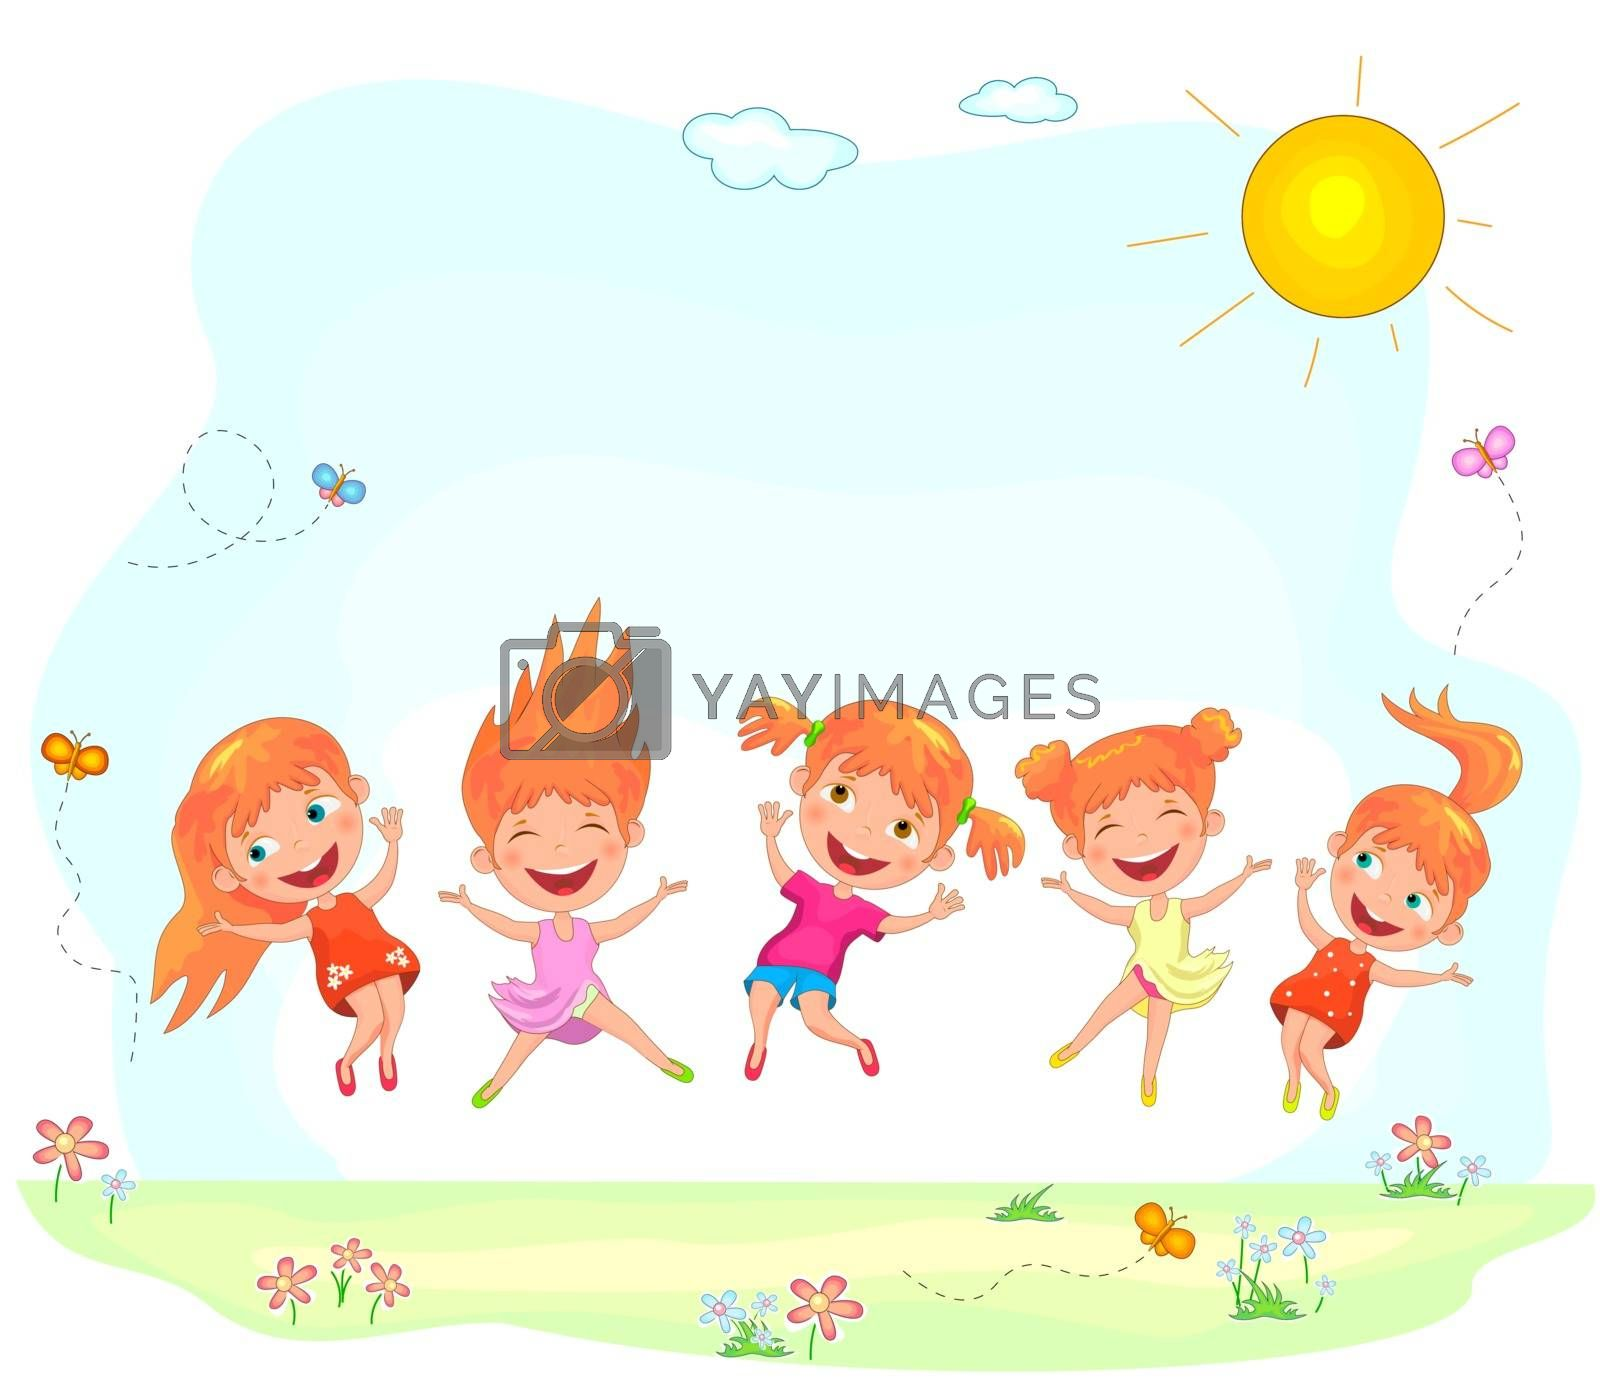 Funny cartoon children play on nature. Little girls are jumping on a summer sunny lawn.